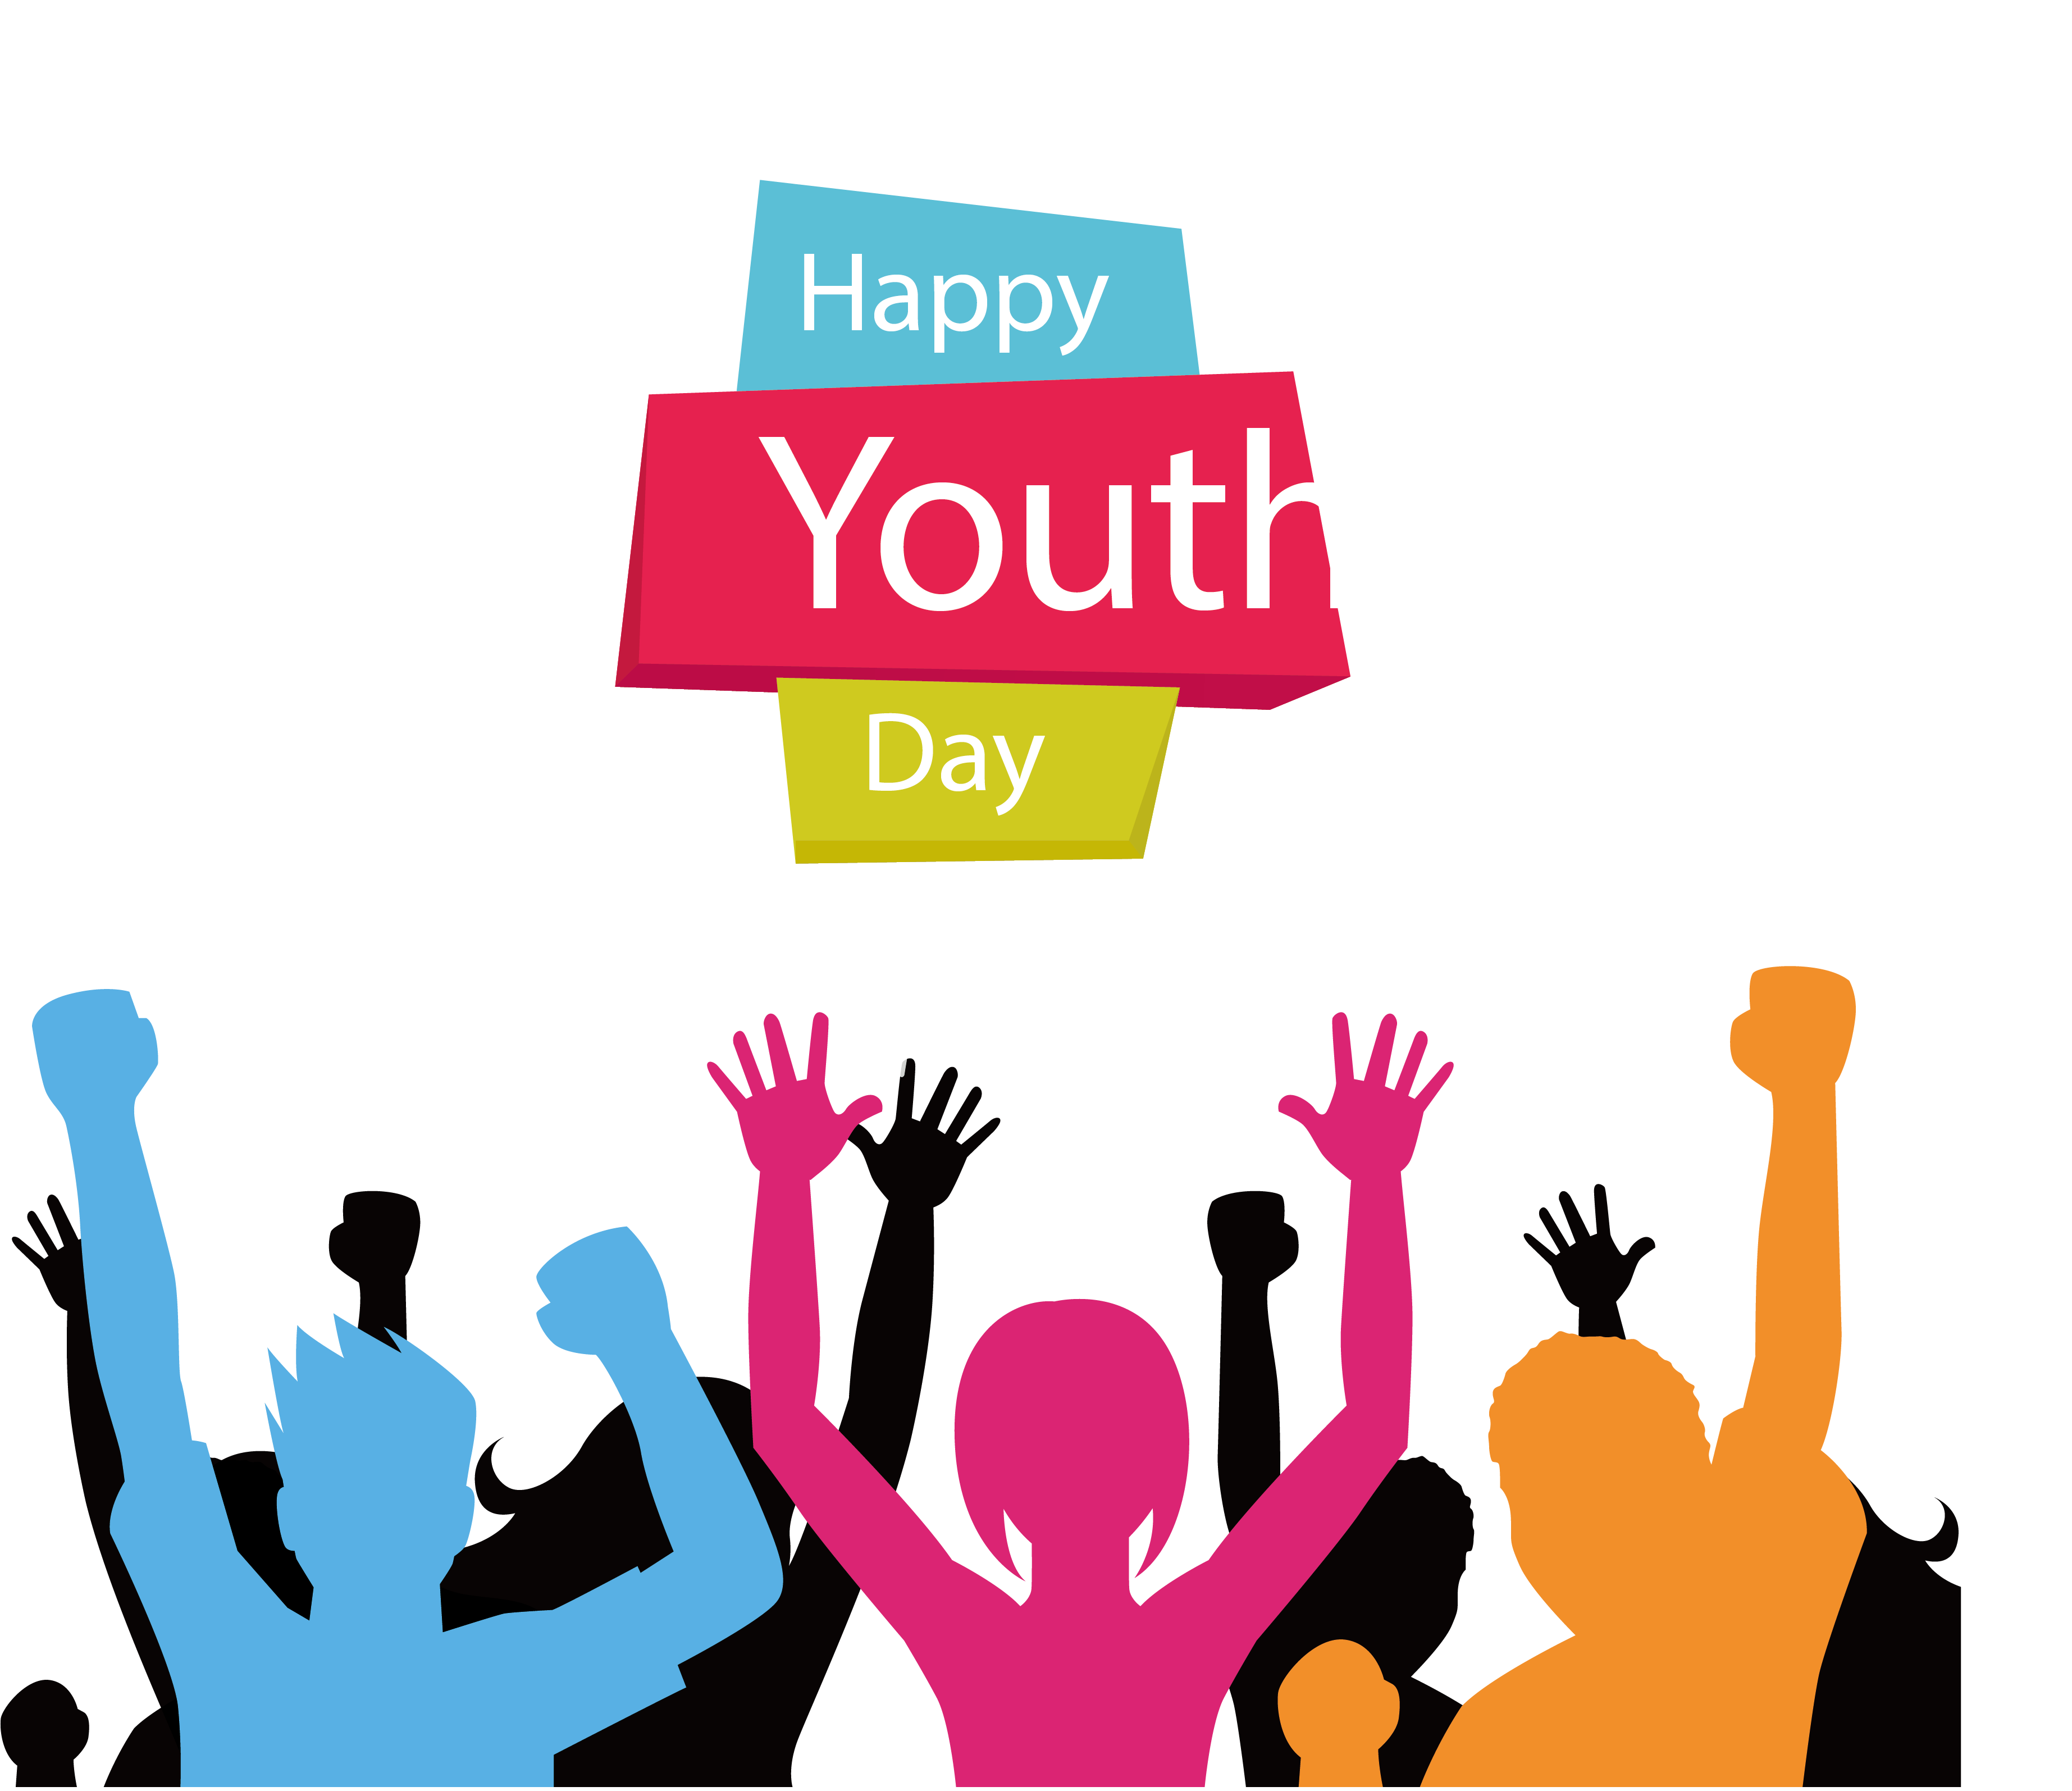 Human clipart youth, Human youth Transparent FREE for.